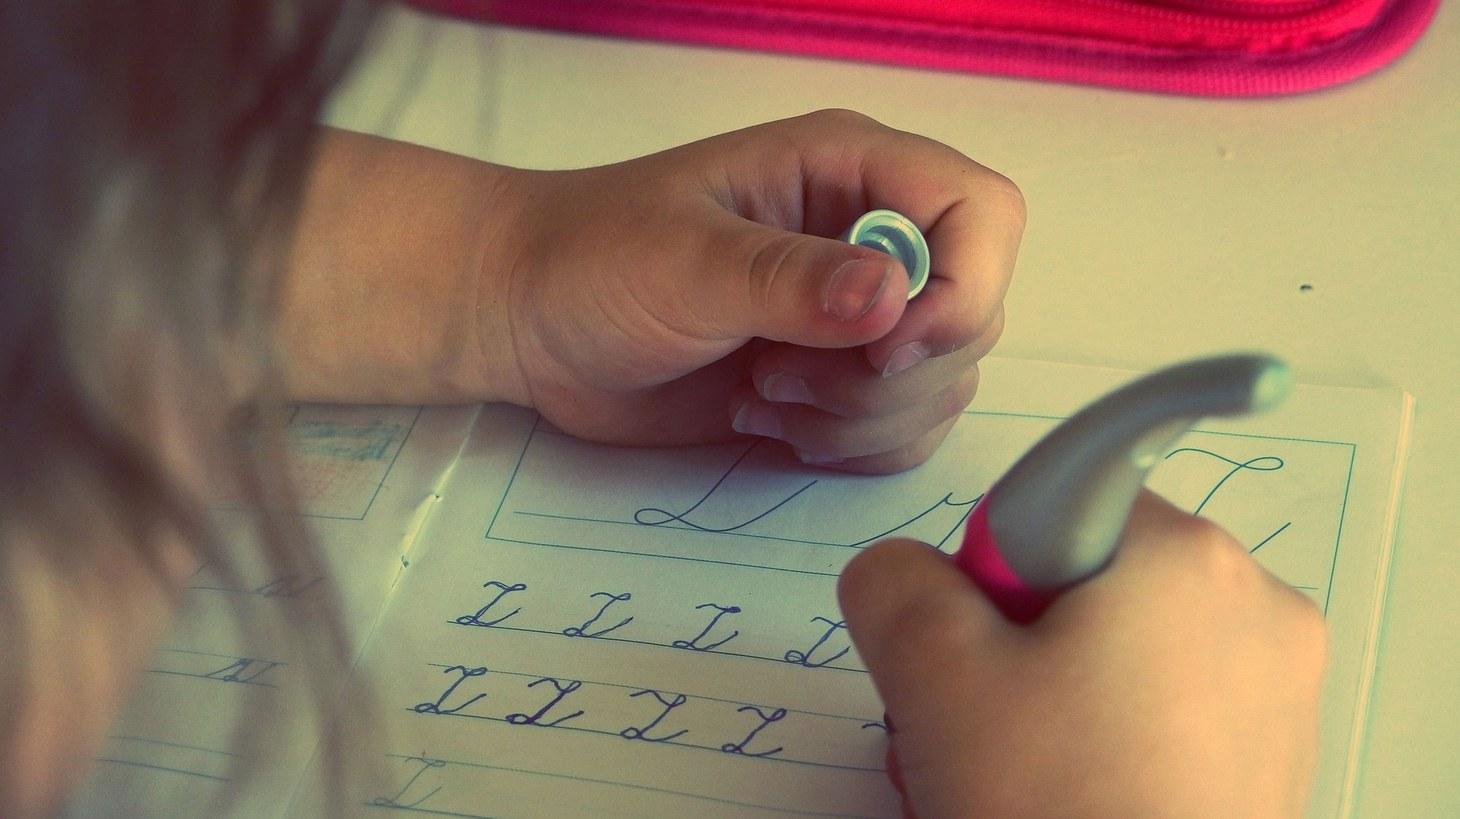 A child writing letters.